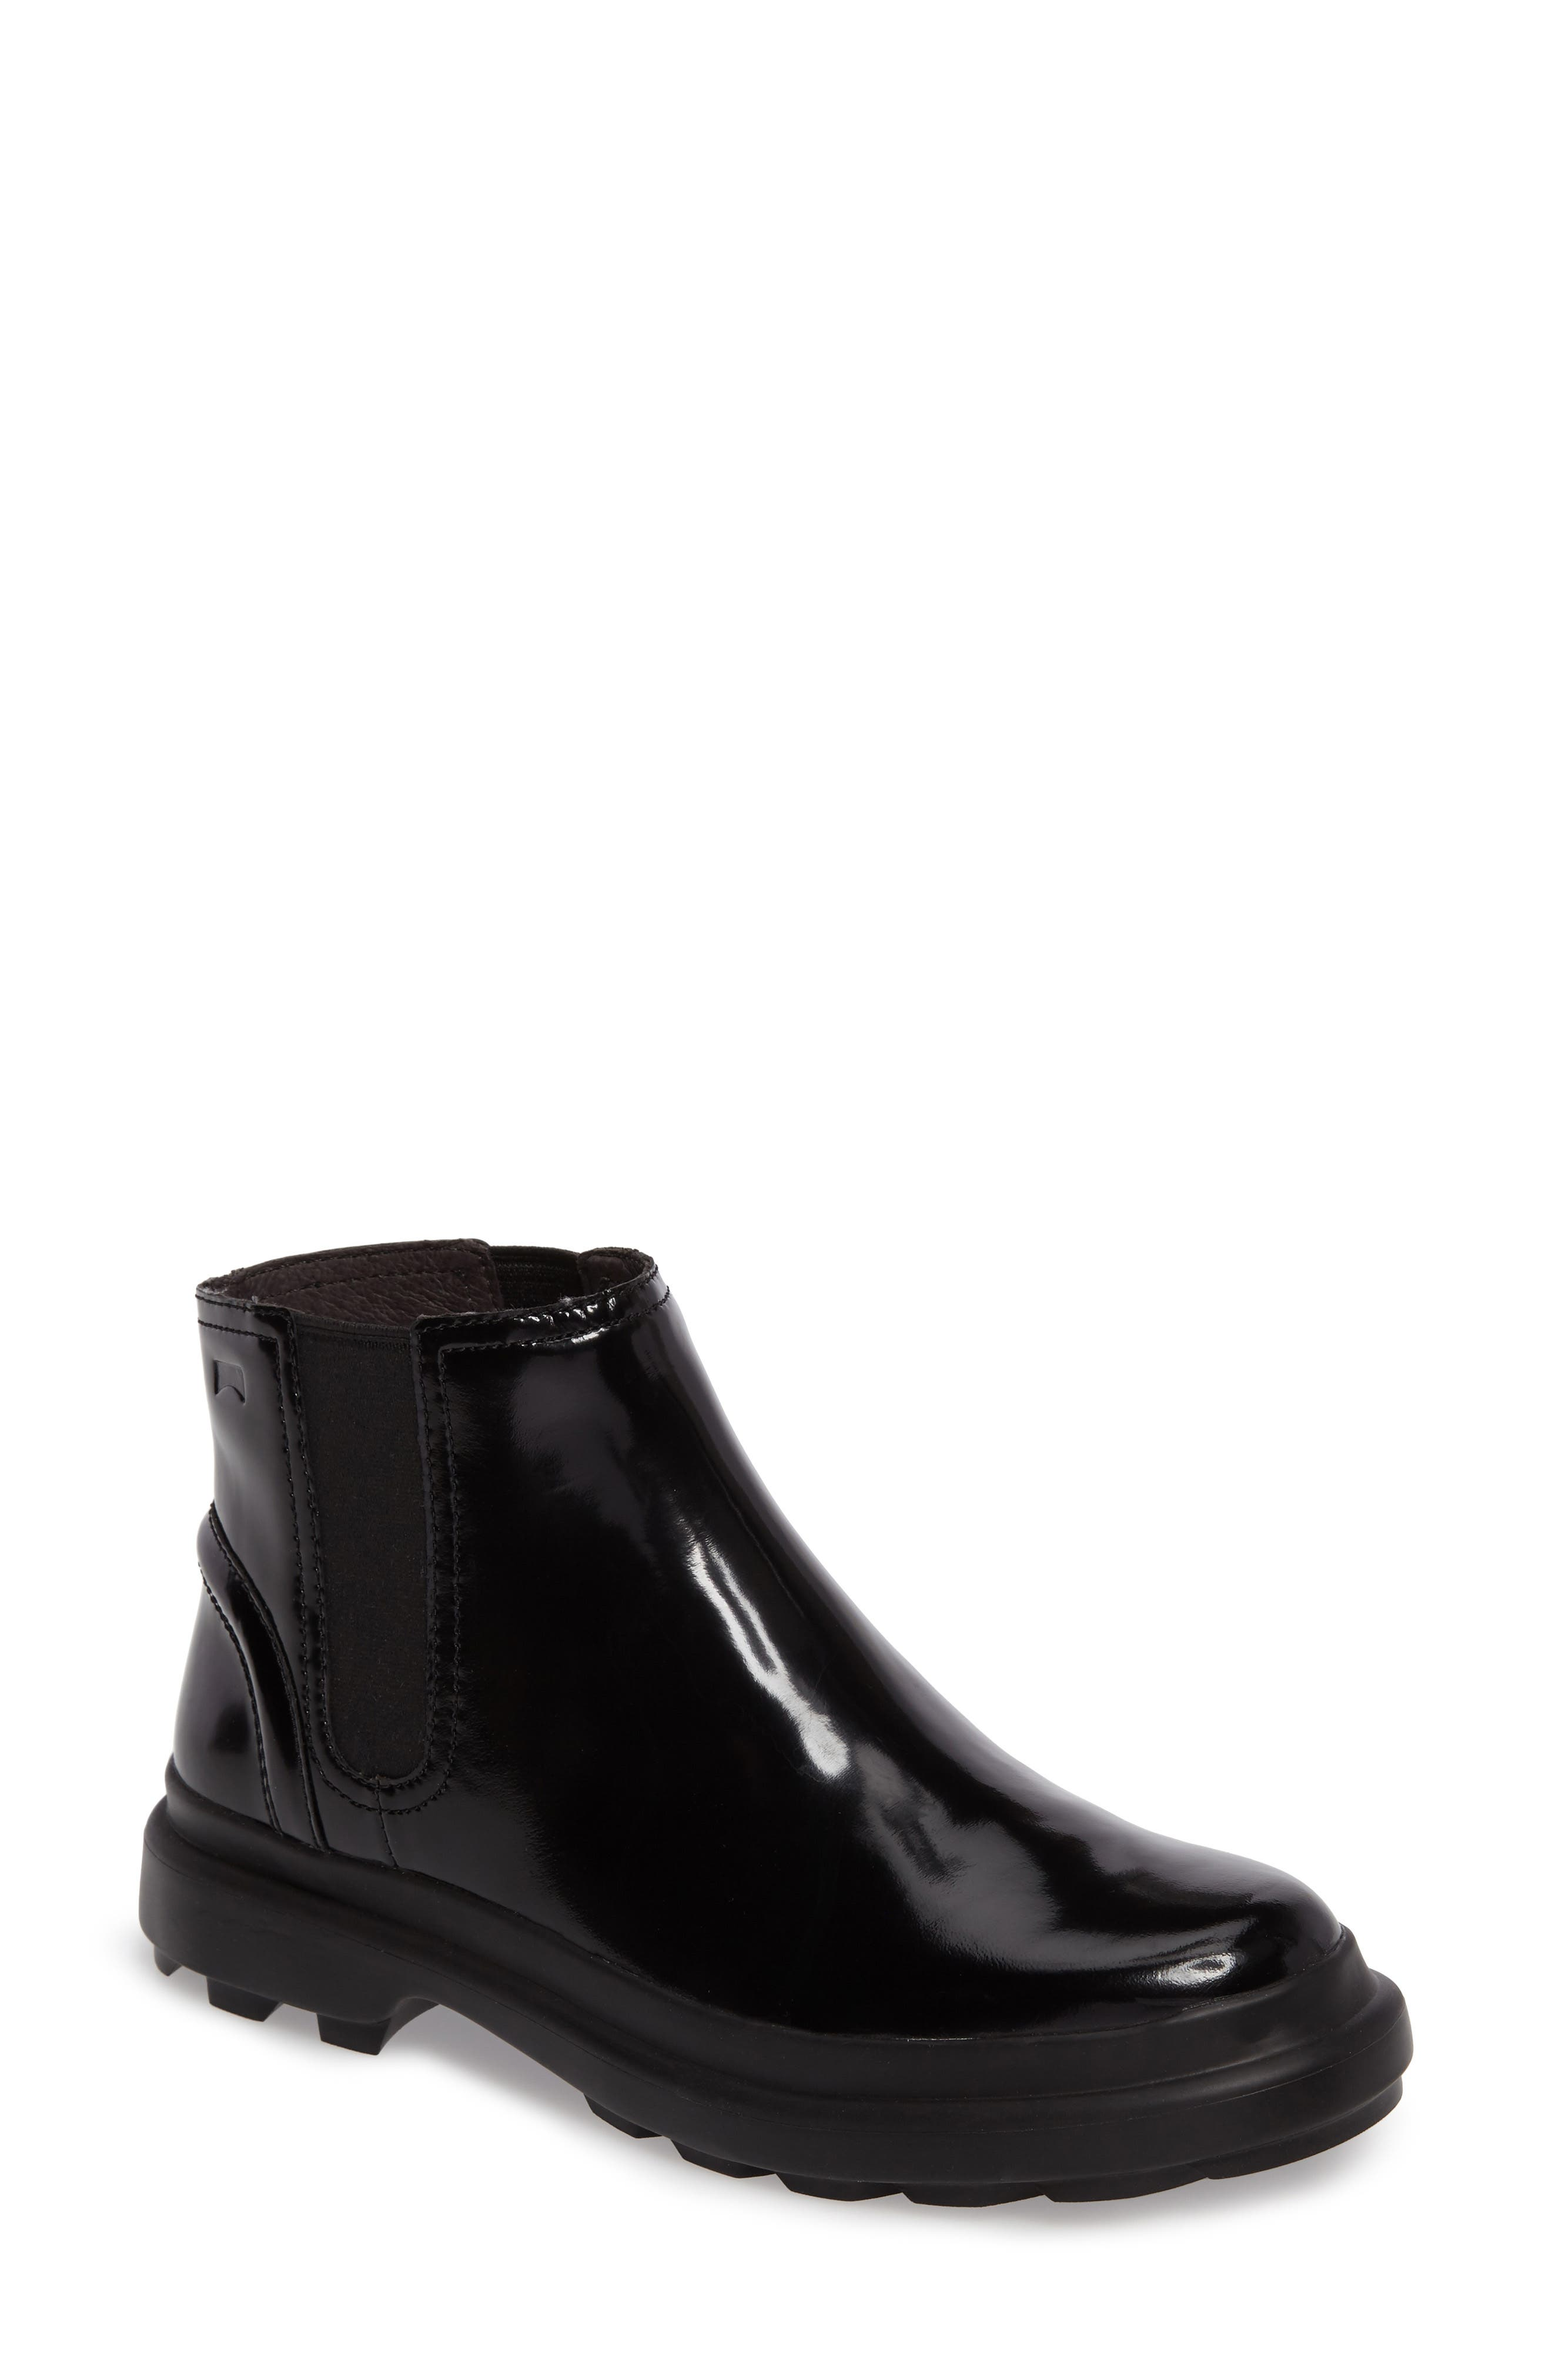 Alternate Image 1 Selected - Camper Turtle Lugged Chelsea Boot (Women)